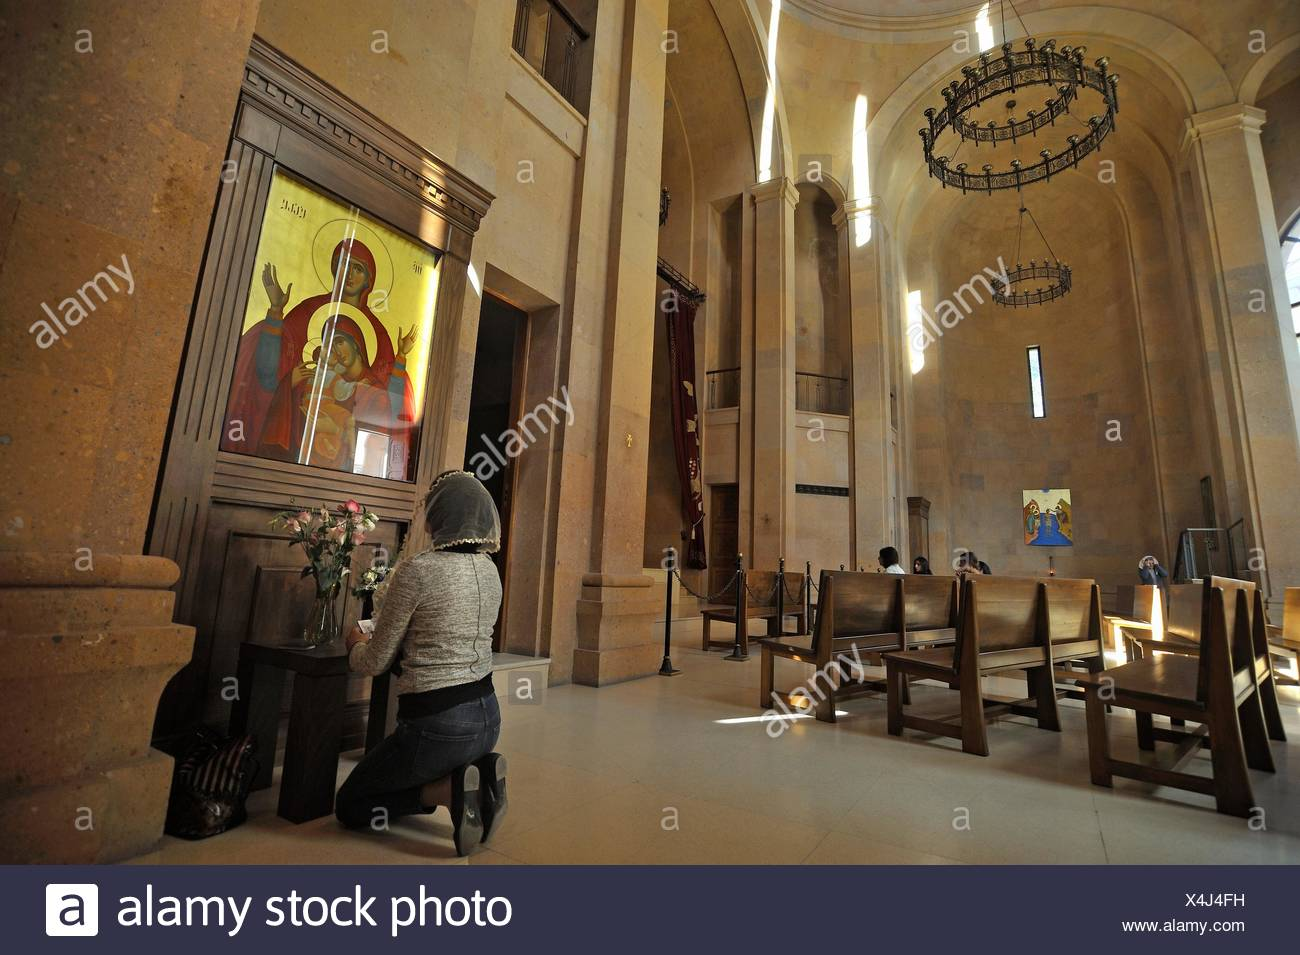 recollection inside Saint Anna Church adjacent to the 13th-century Katoghike ChurchKatoghike Holy Mother of God Church, Yerevan, Armenia, Eurasia. - Stock Image